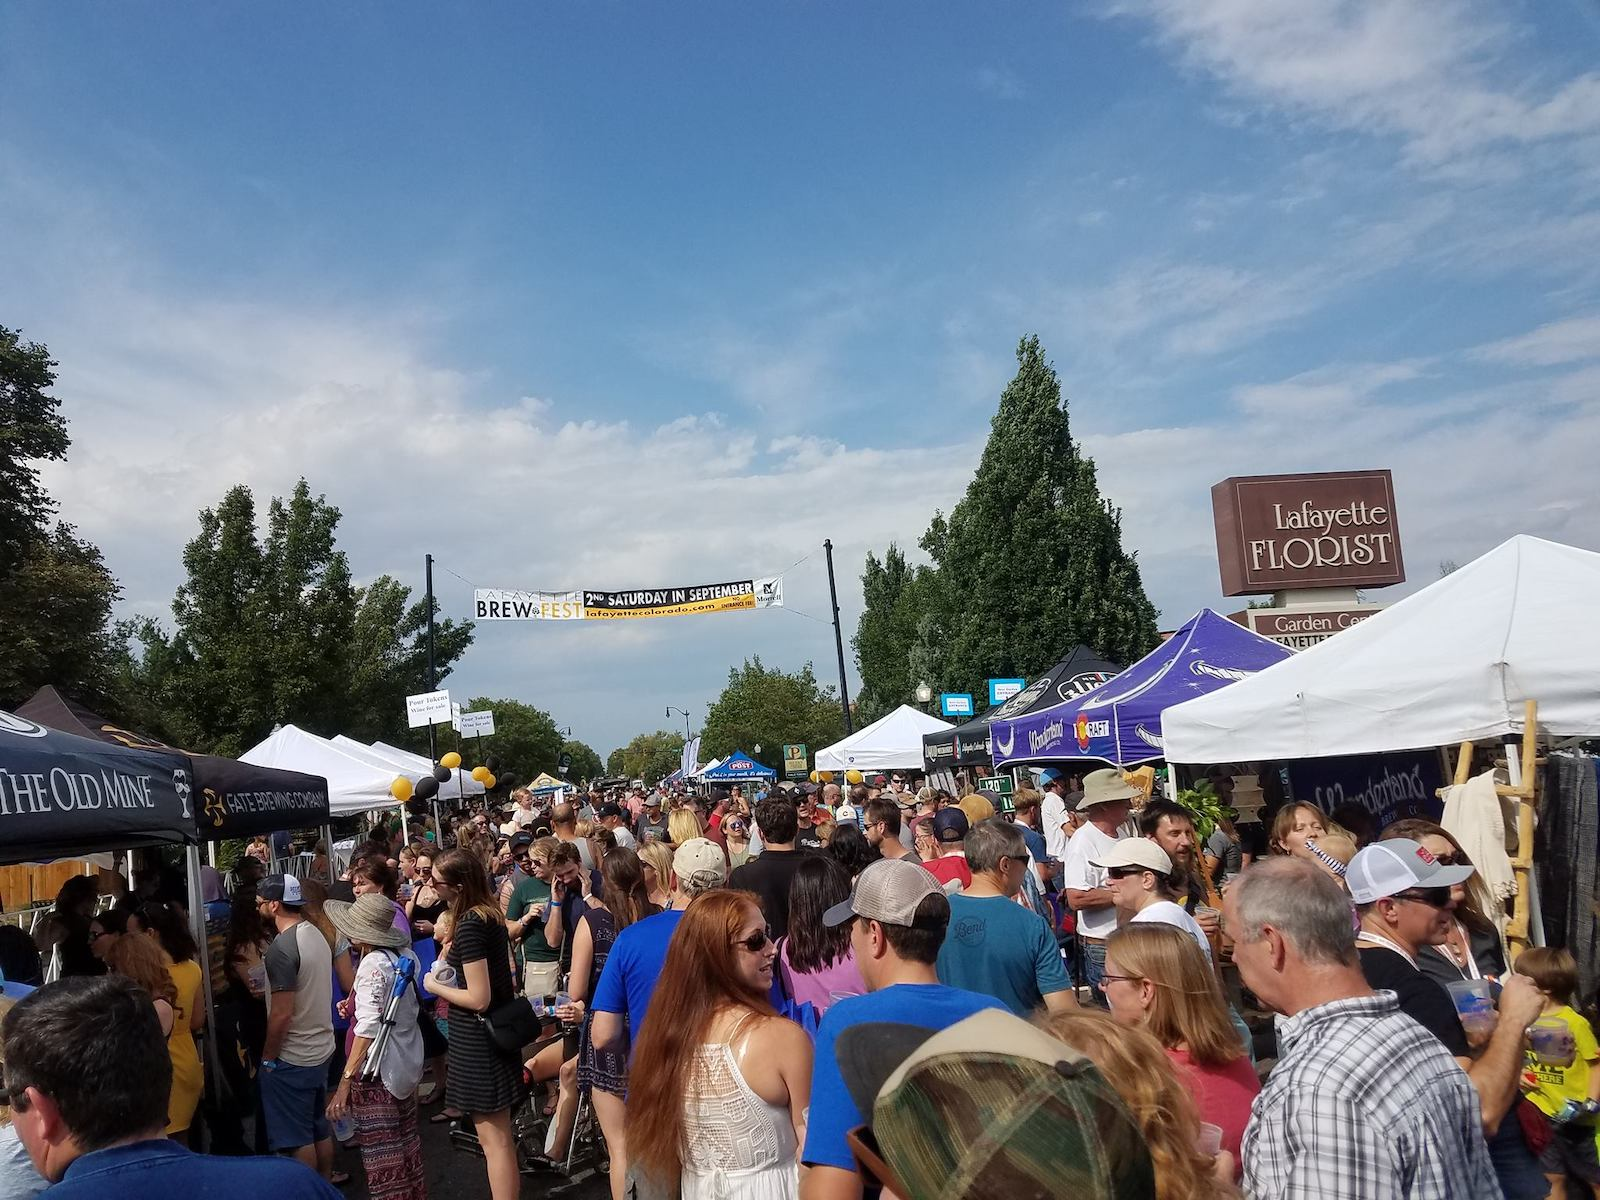 Image of the Lafayette Brew Fest